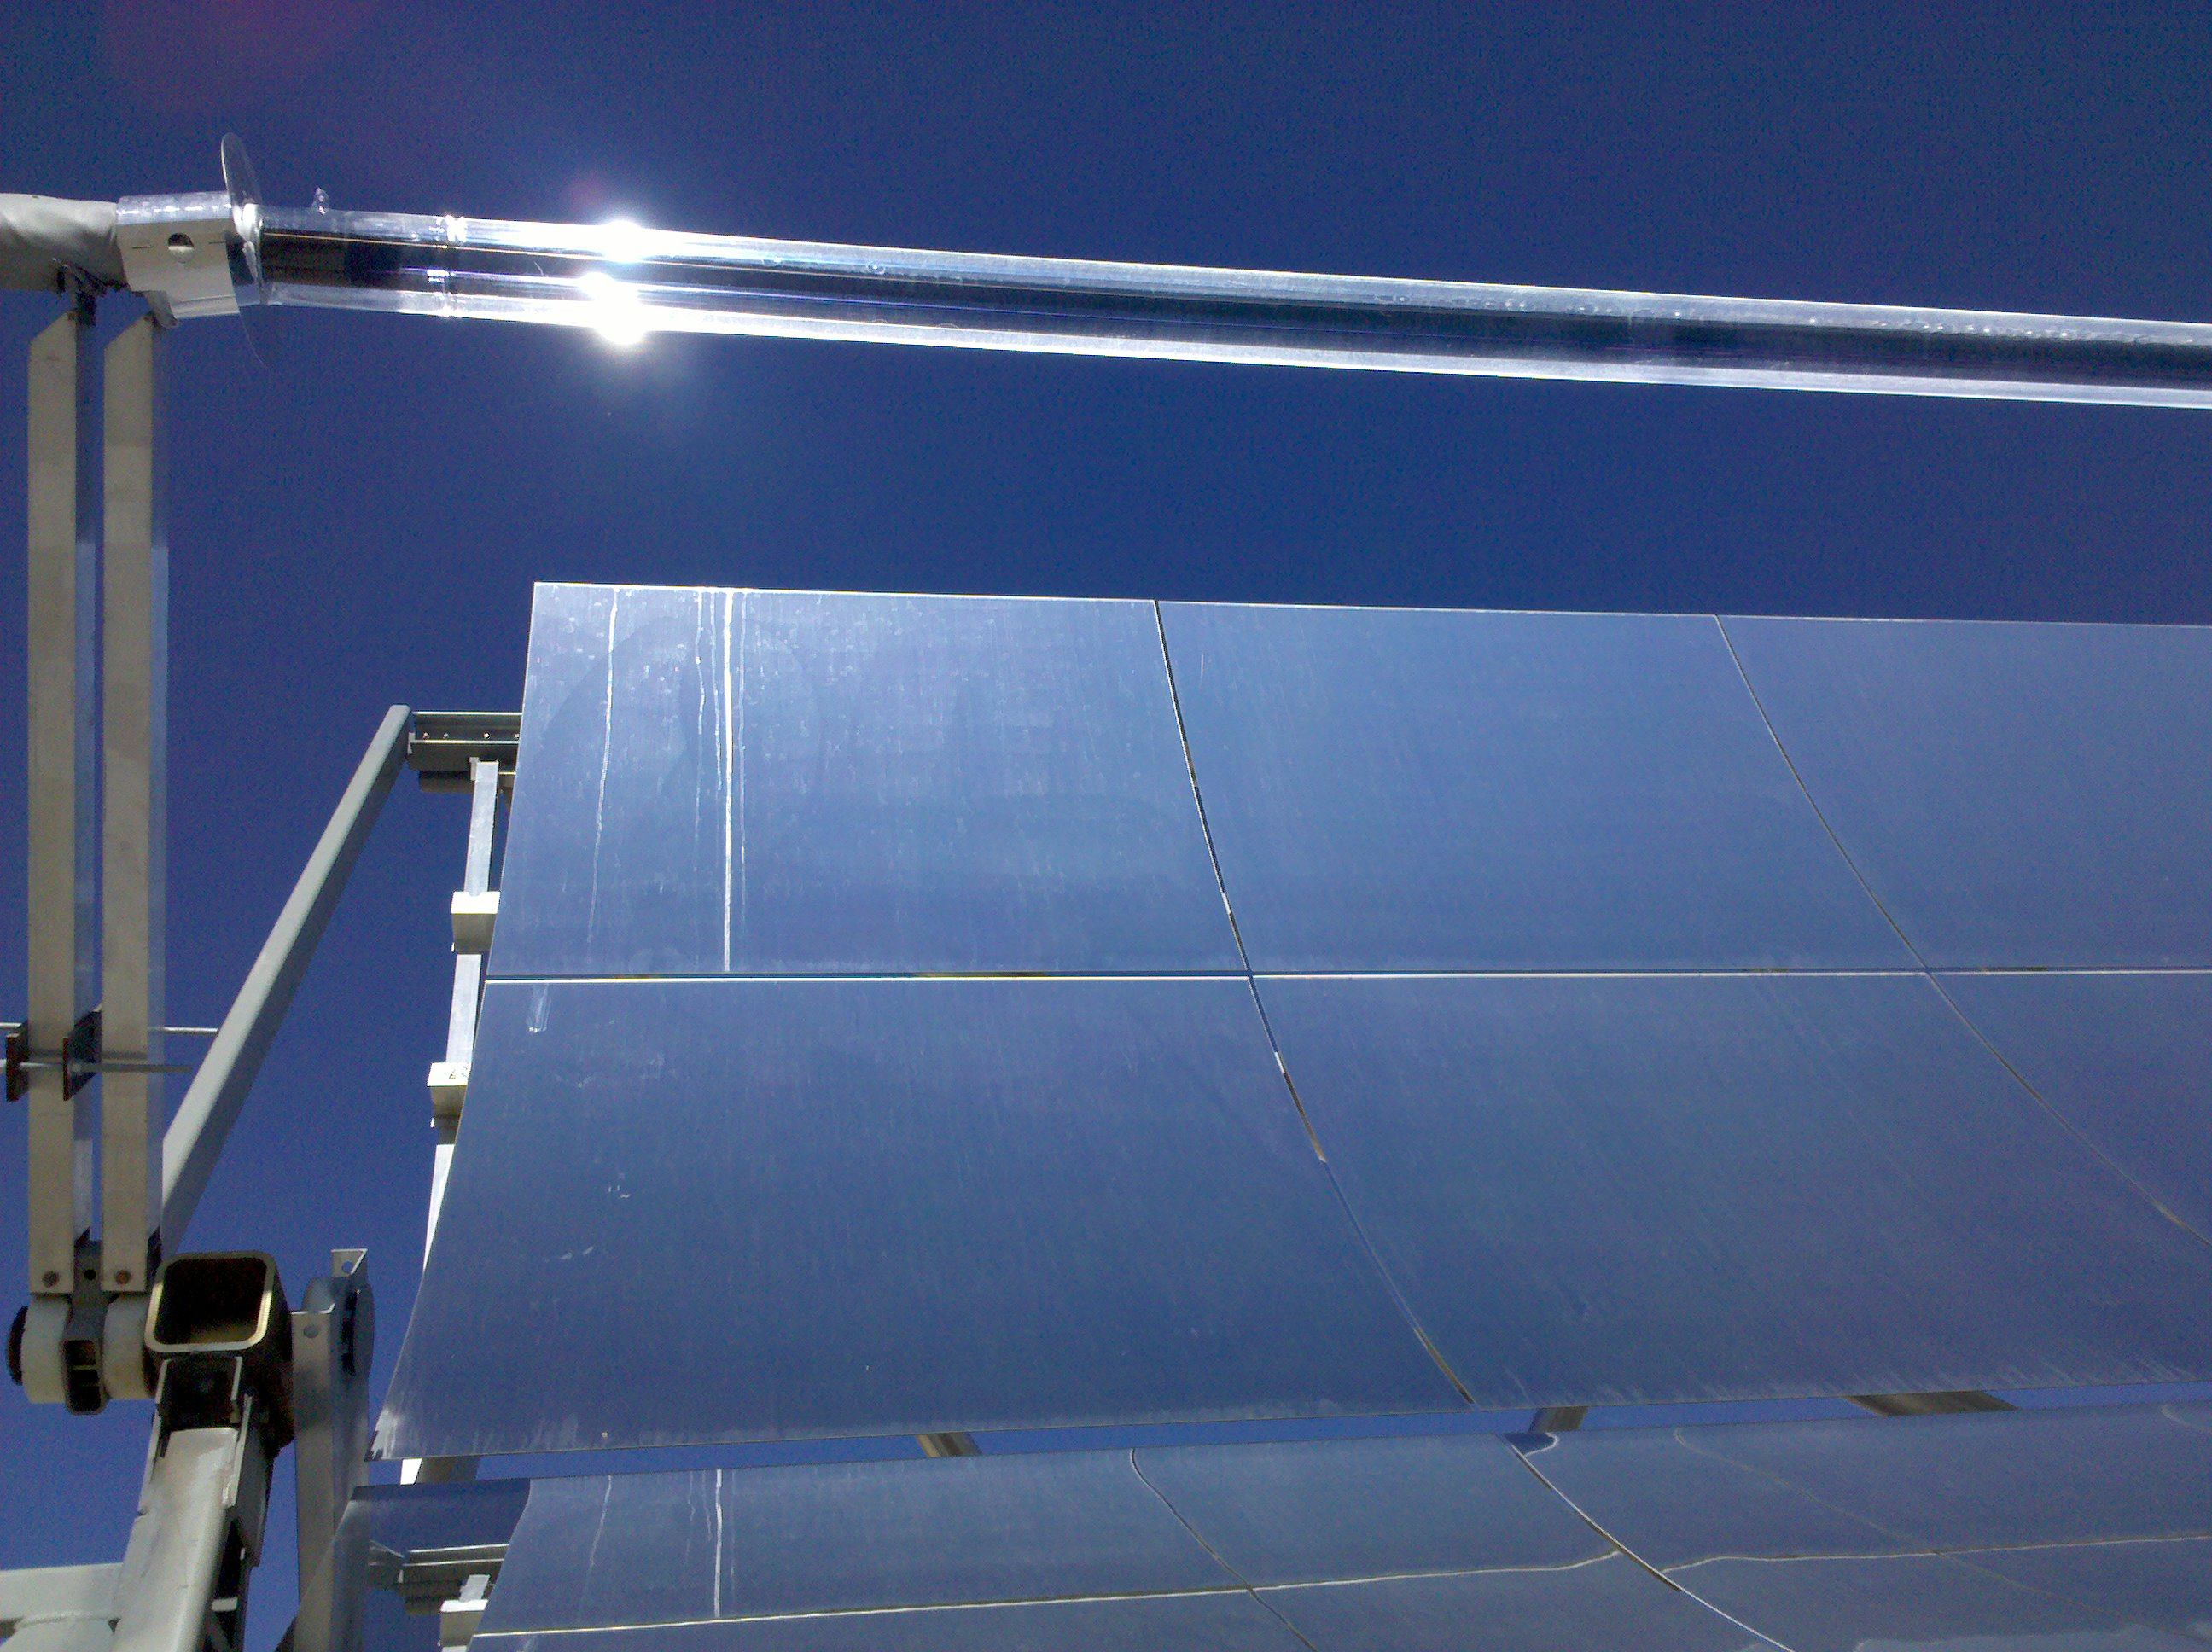 Grand Junction, home to first coal-solar hybrid energy plant